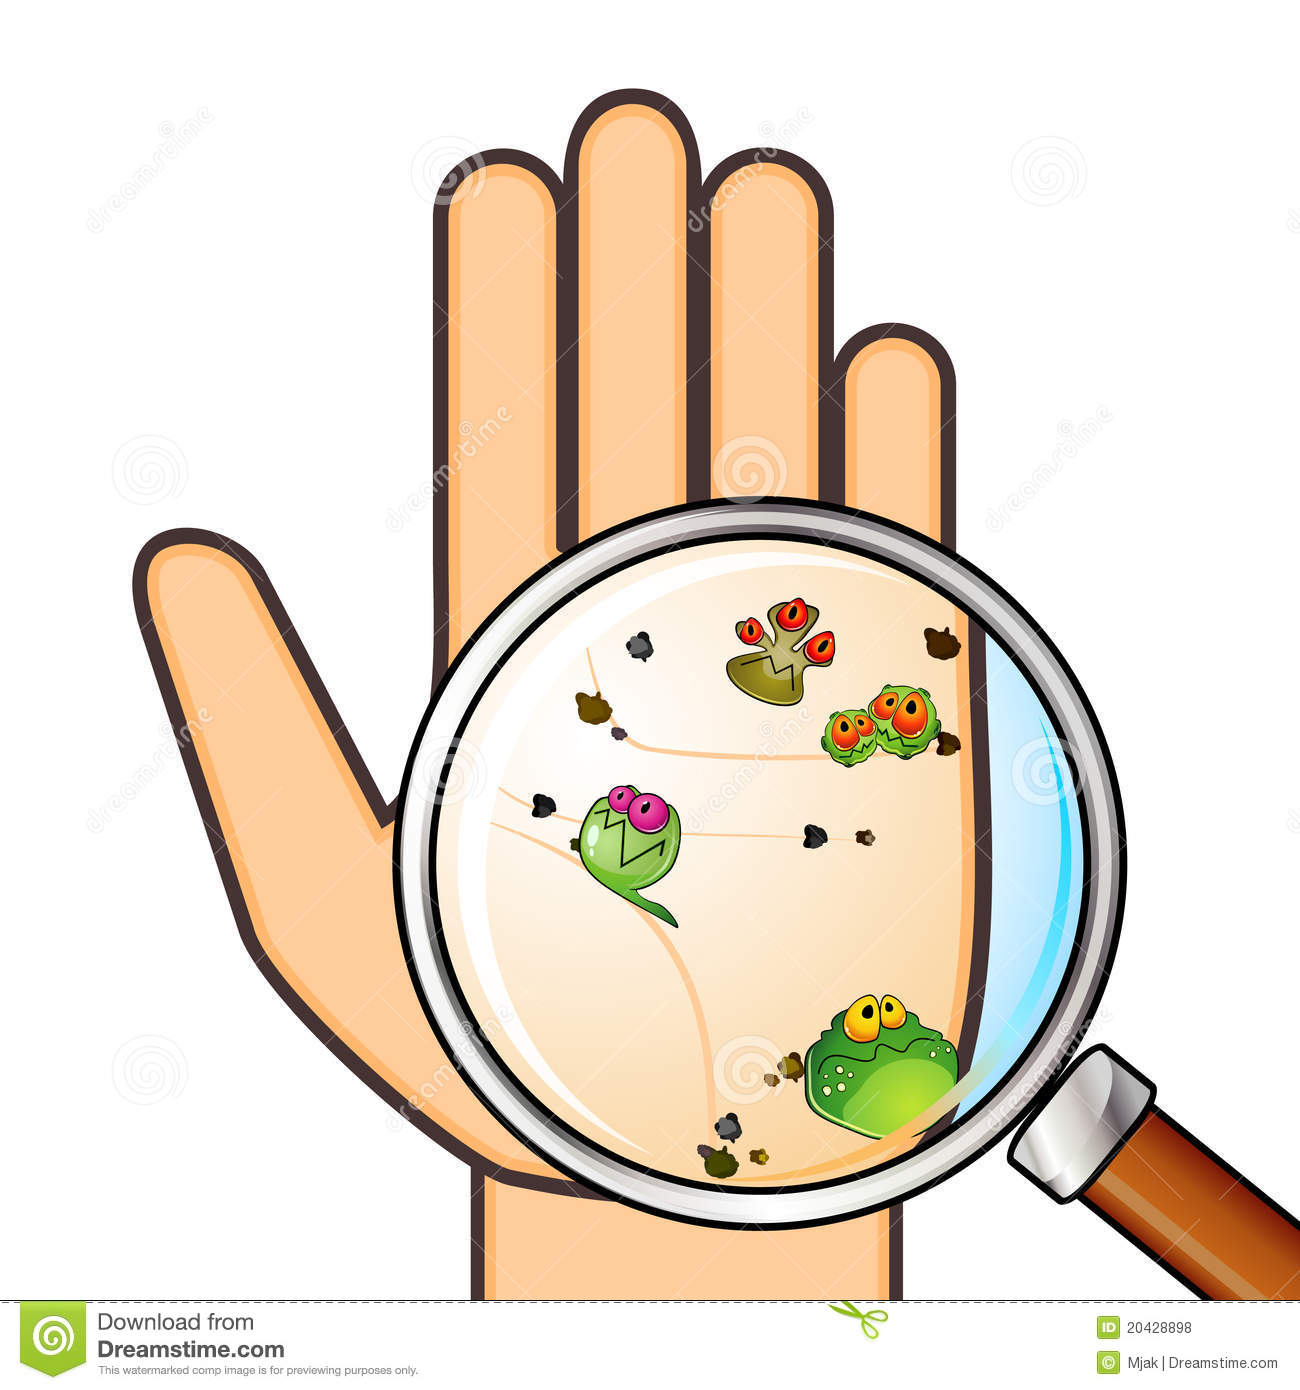 Palm With Germs And Trash Across Magnifying Glass Mr No Pr No 3 2991 8